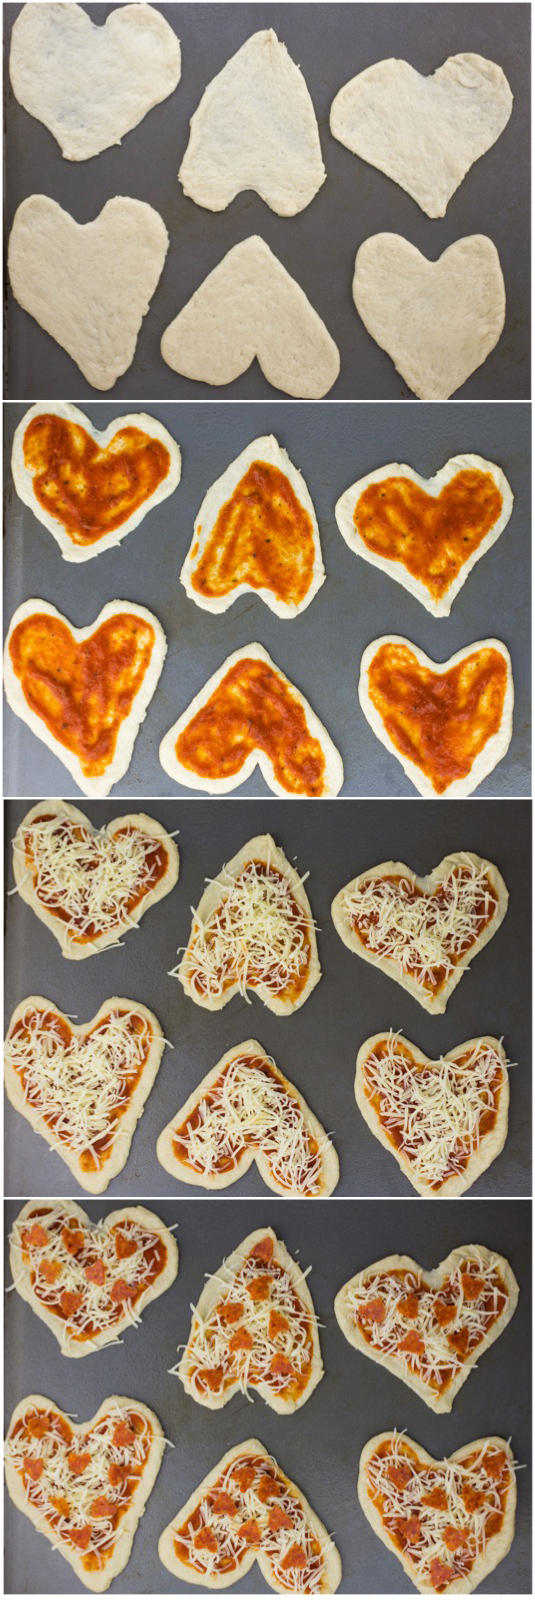 Heart Pizza Steps